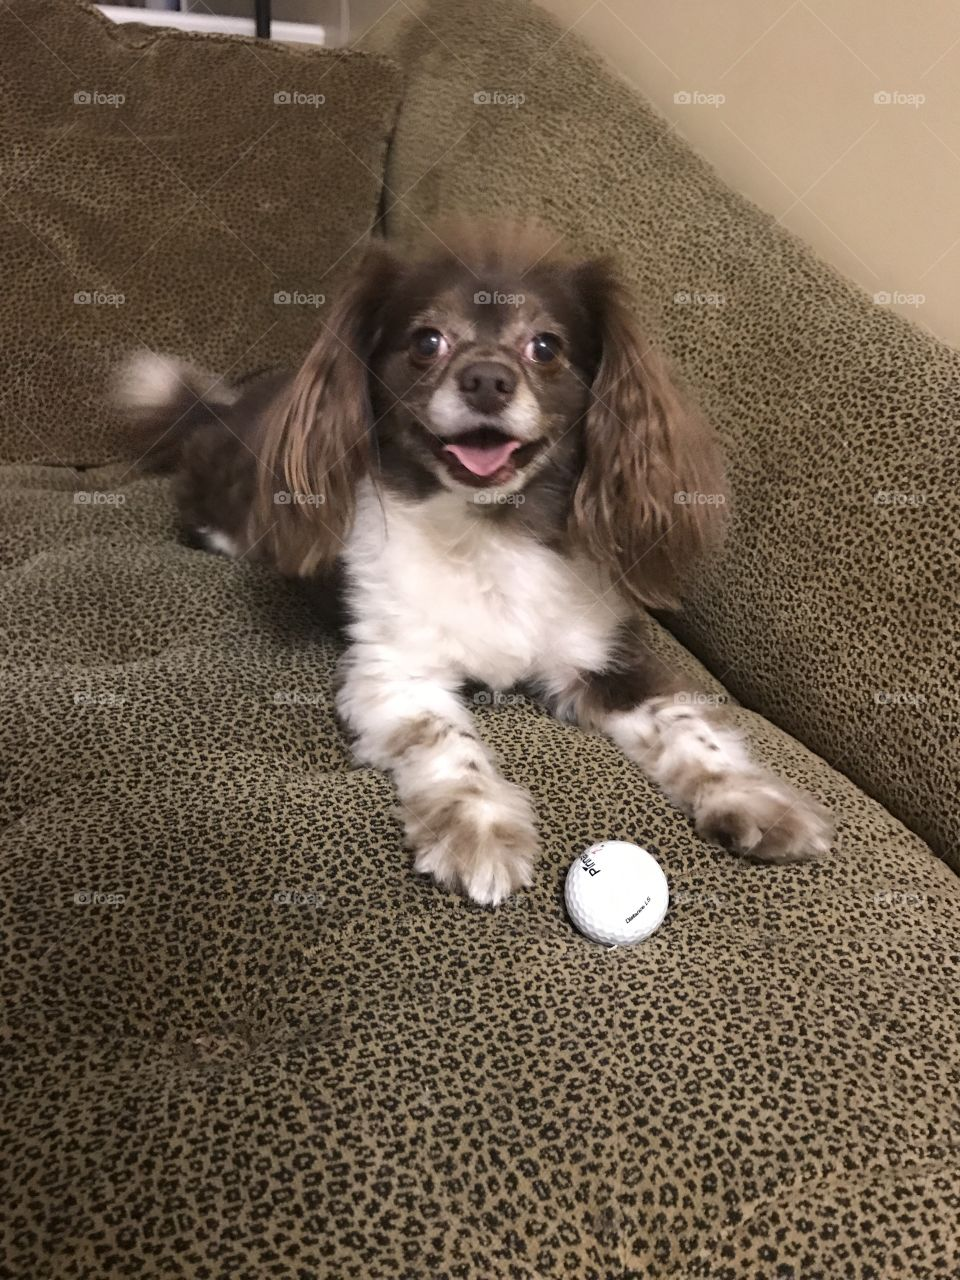 Funny looking brown dog with long flappy ears and white golf ball.